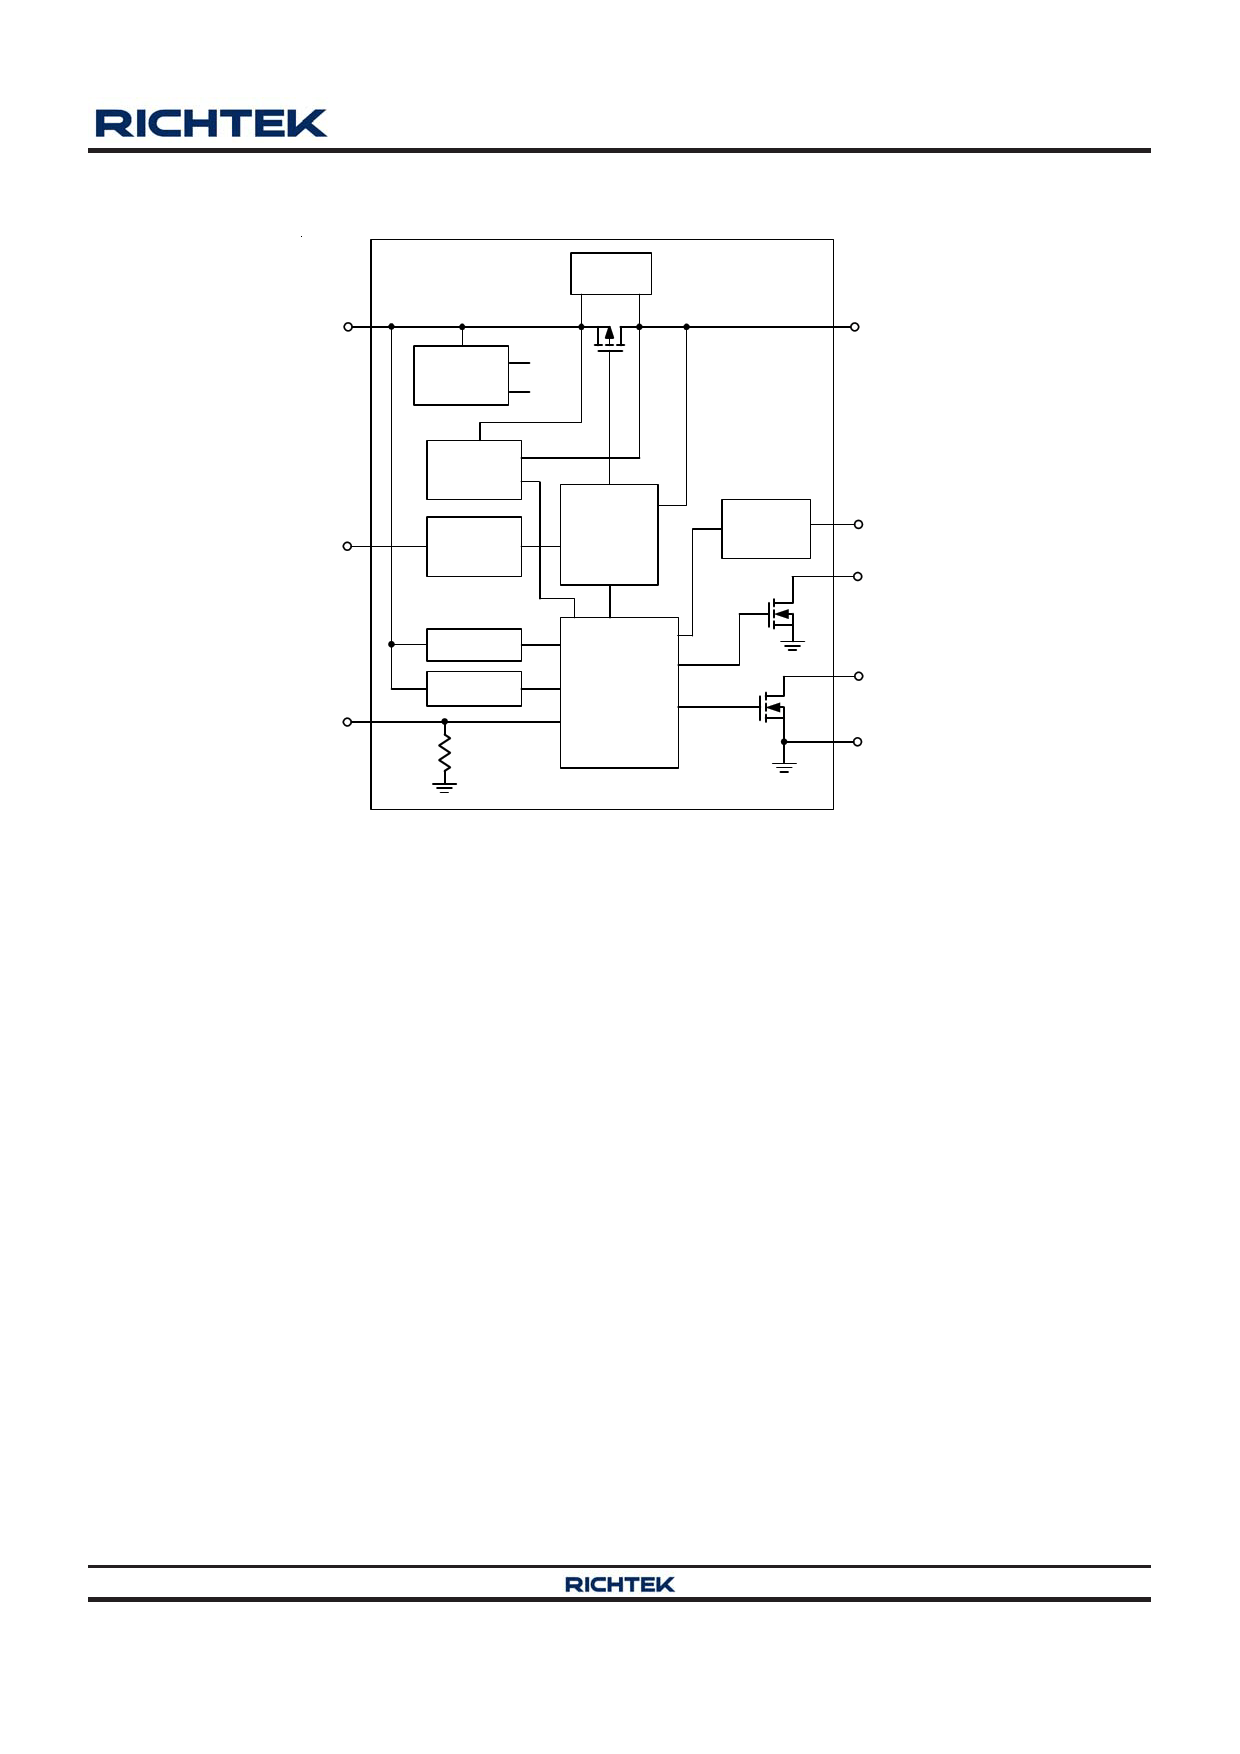 lithium ion cell diagram wiring for electric brake controller li battery charger block mosfets